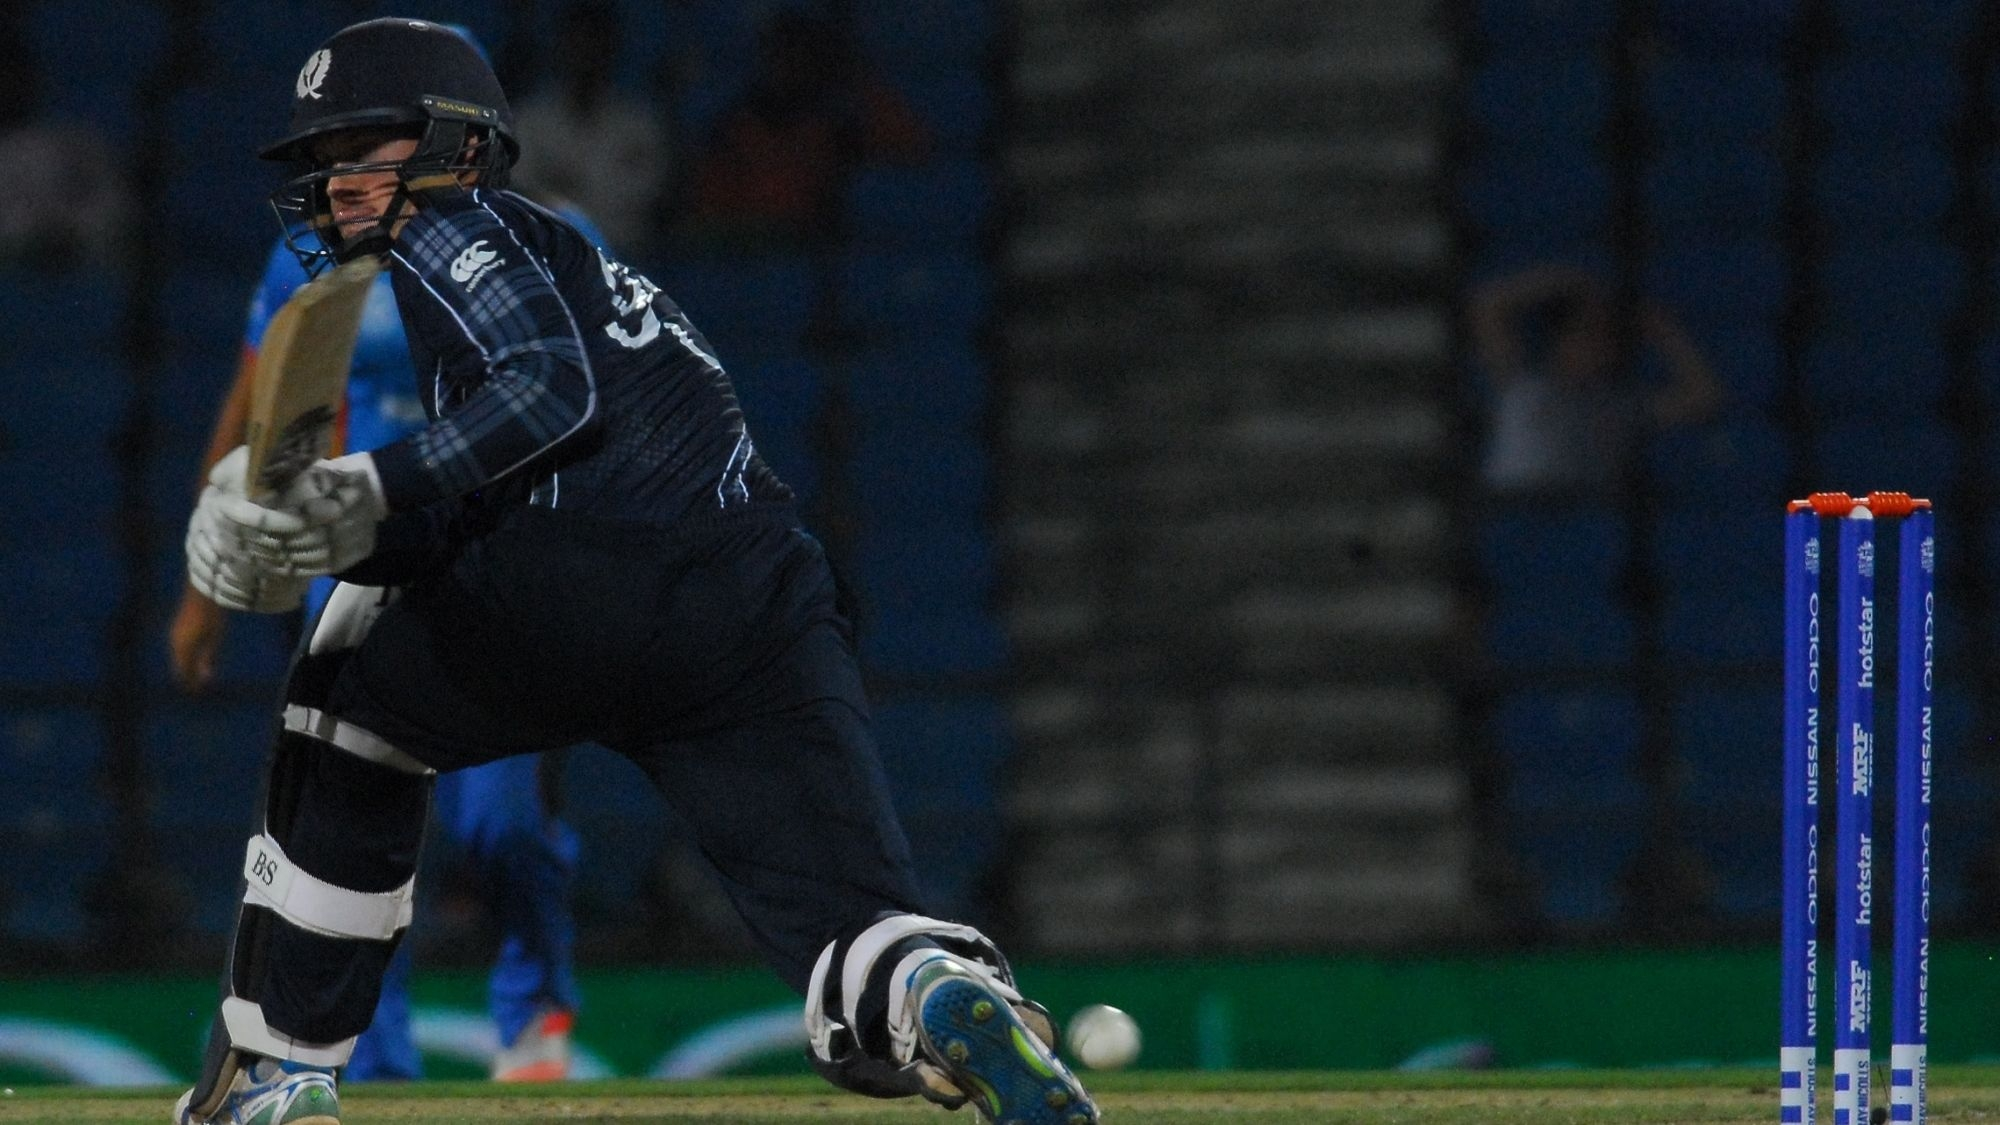 Scotland Batsman Blasts 25-ball Hundred and 6 Sixes in an Over